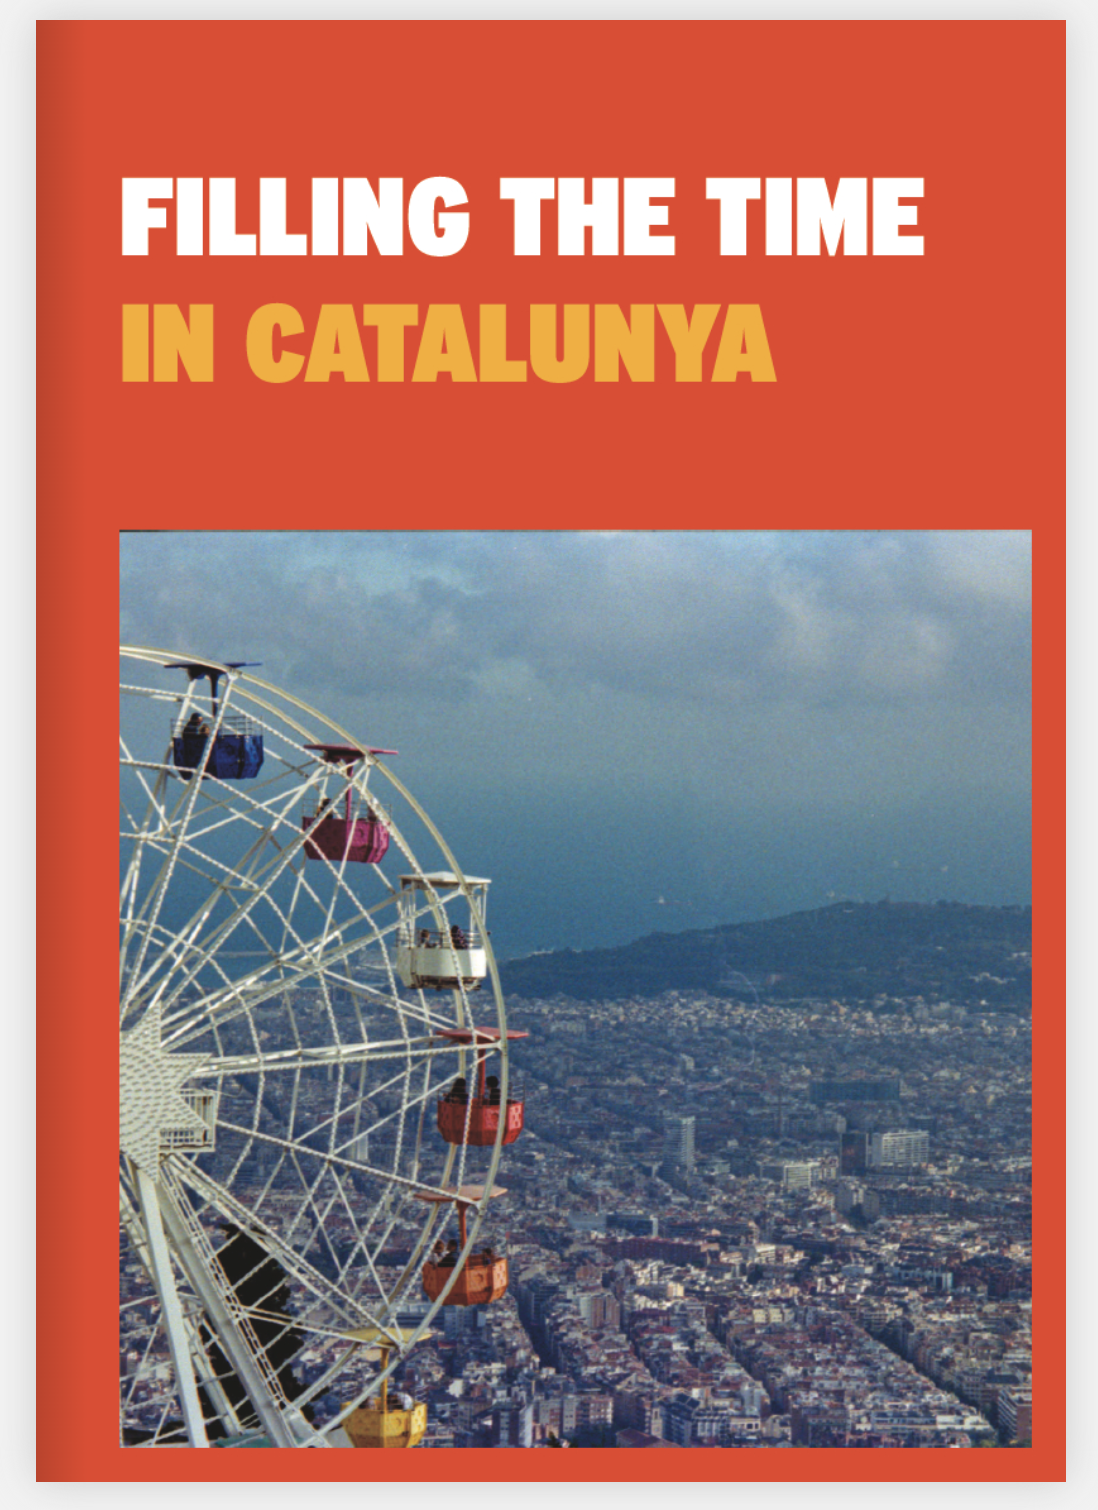 Image of Filling The Time in Catalunya